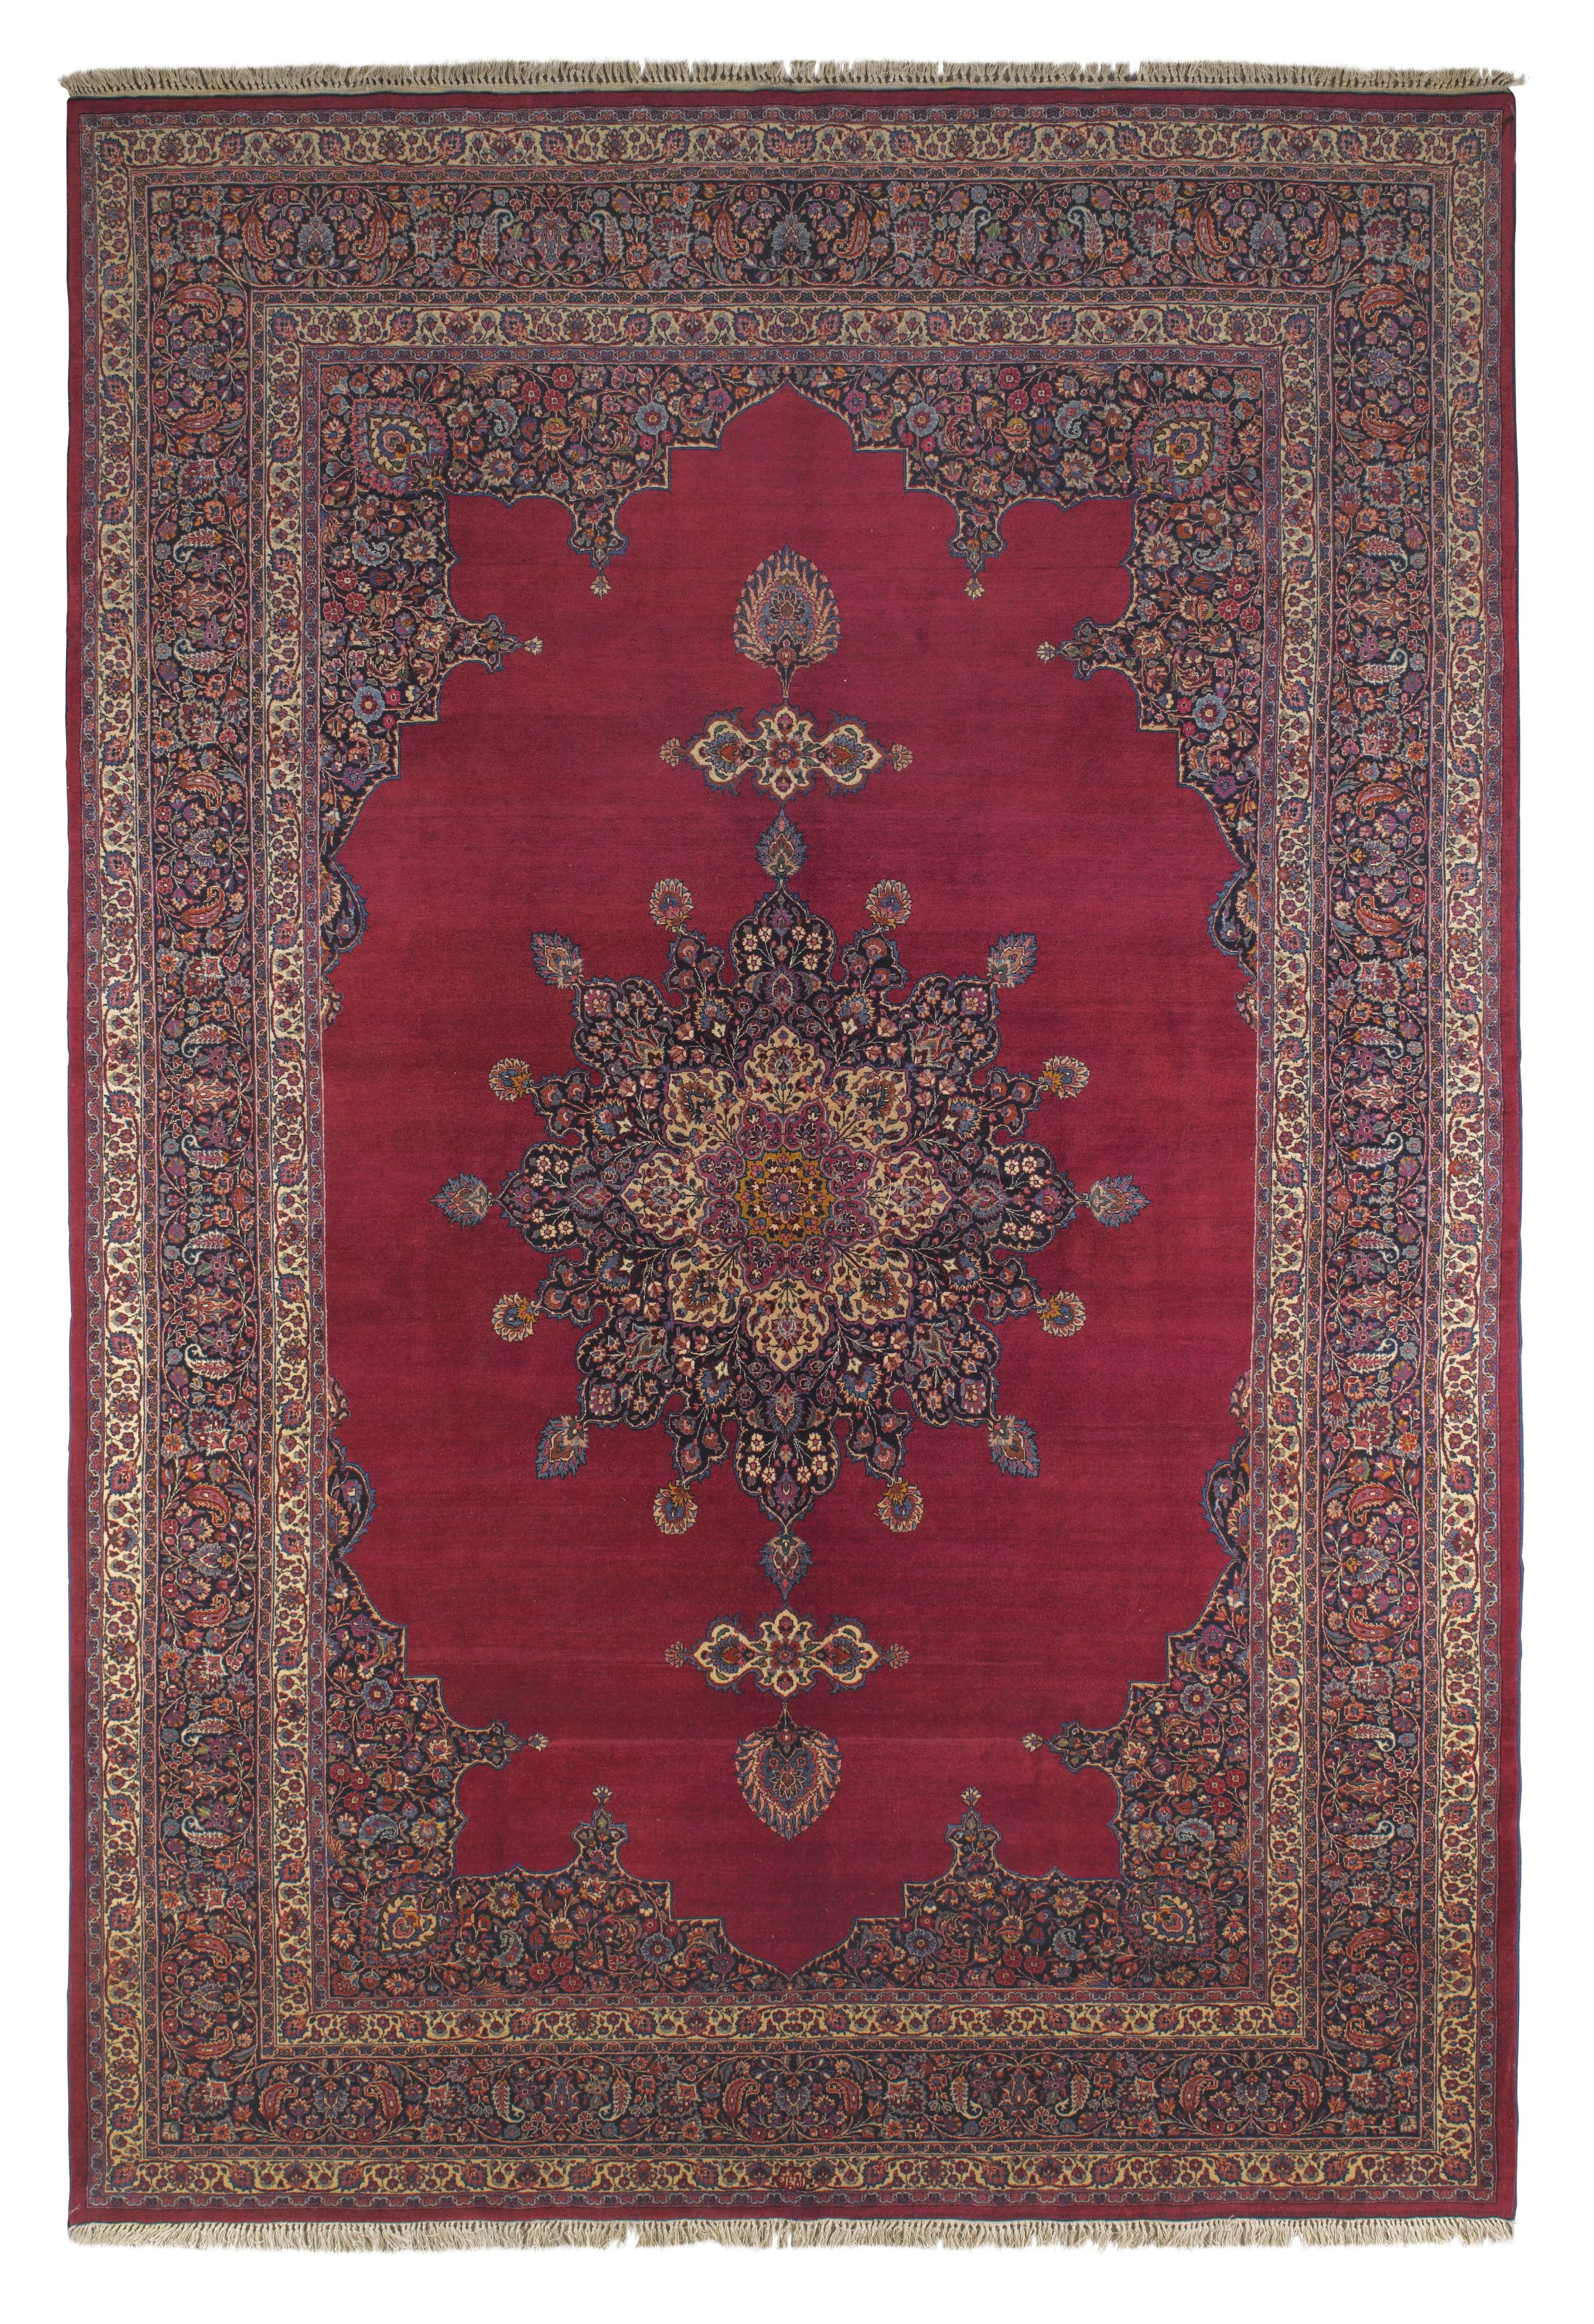 We Have A Mashad And We Love It Mashad Amoghli Carpet Northeast Persia Approx 12ft 2in 8ft 4in Mid Antique Persian Carpet Rugs On Carpet Carpet